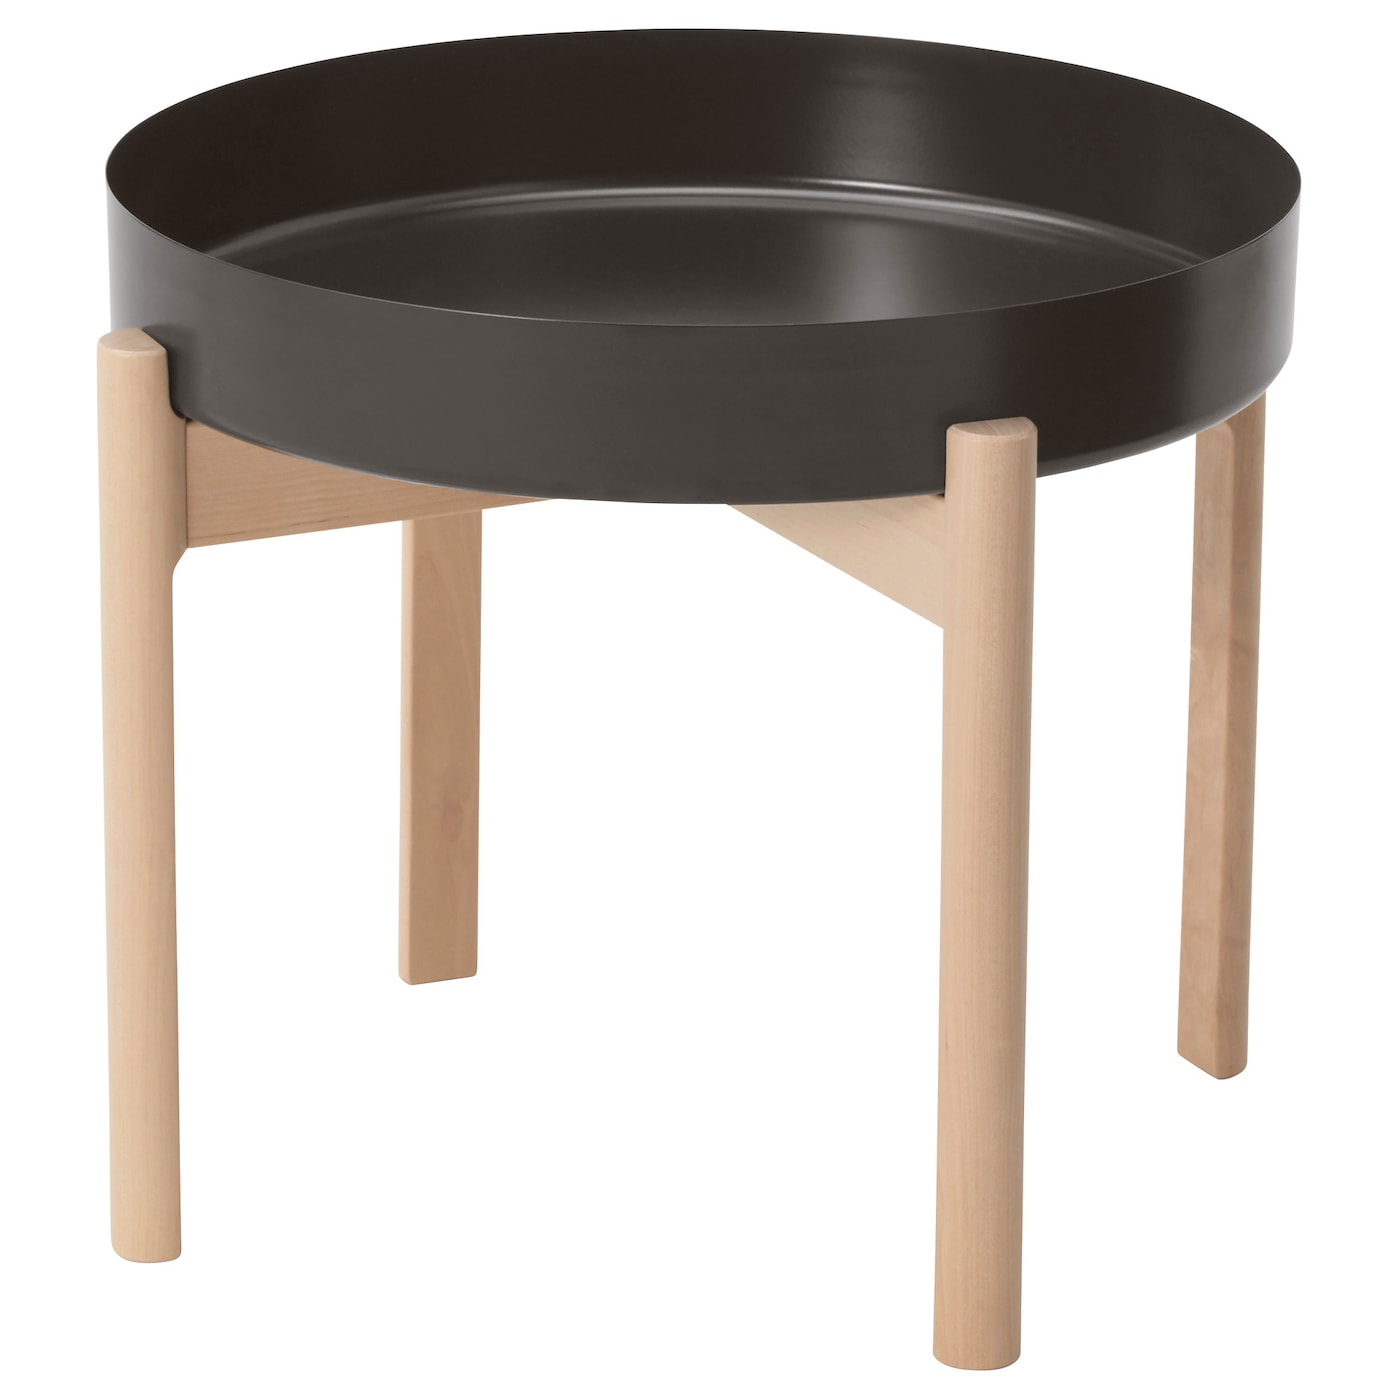 Ikea leksvik coffee table - Ikea Ypperlig Coffee Table Solid Birch Is A Hard Wearing Natural Material